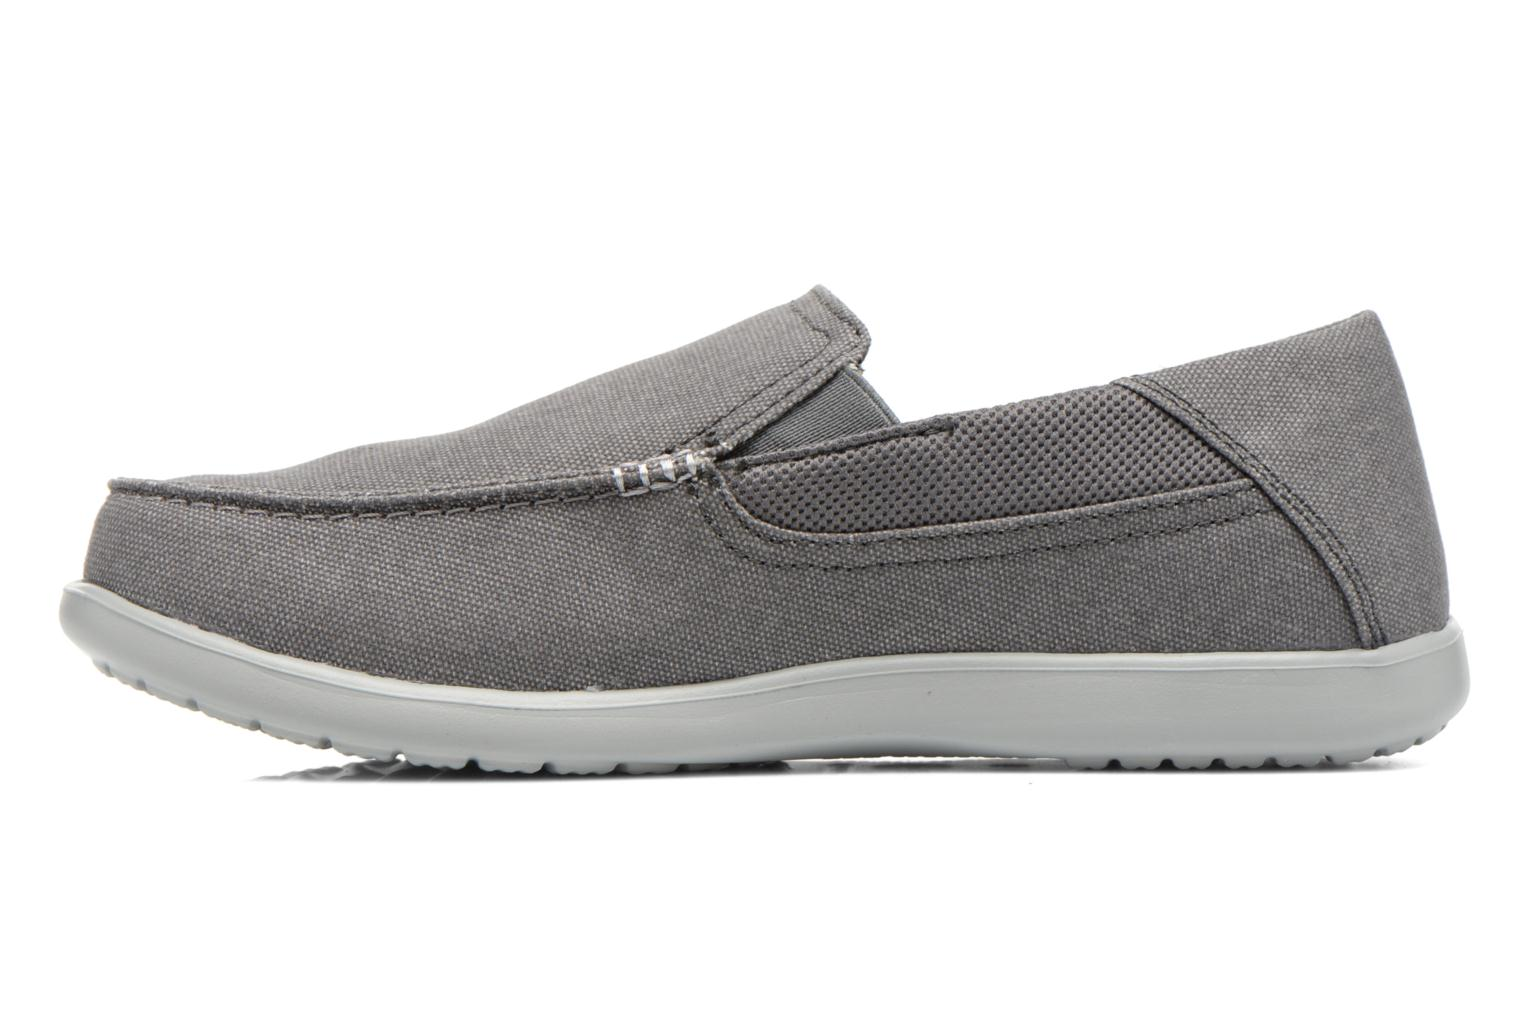 Santa Cruz 2 Luxe M Charcoal/light grey